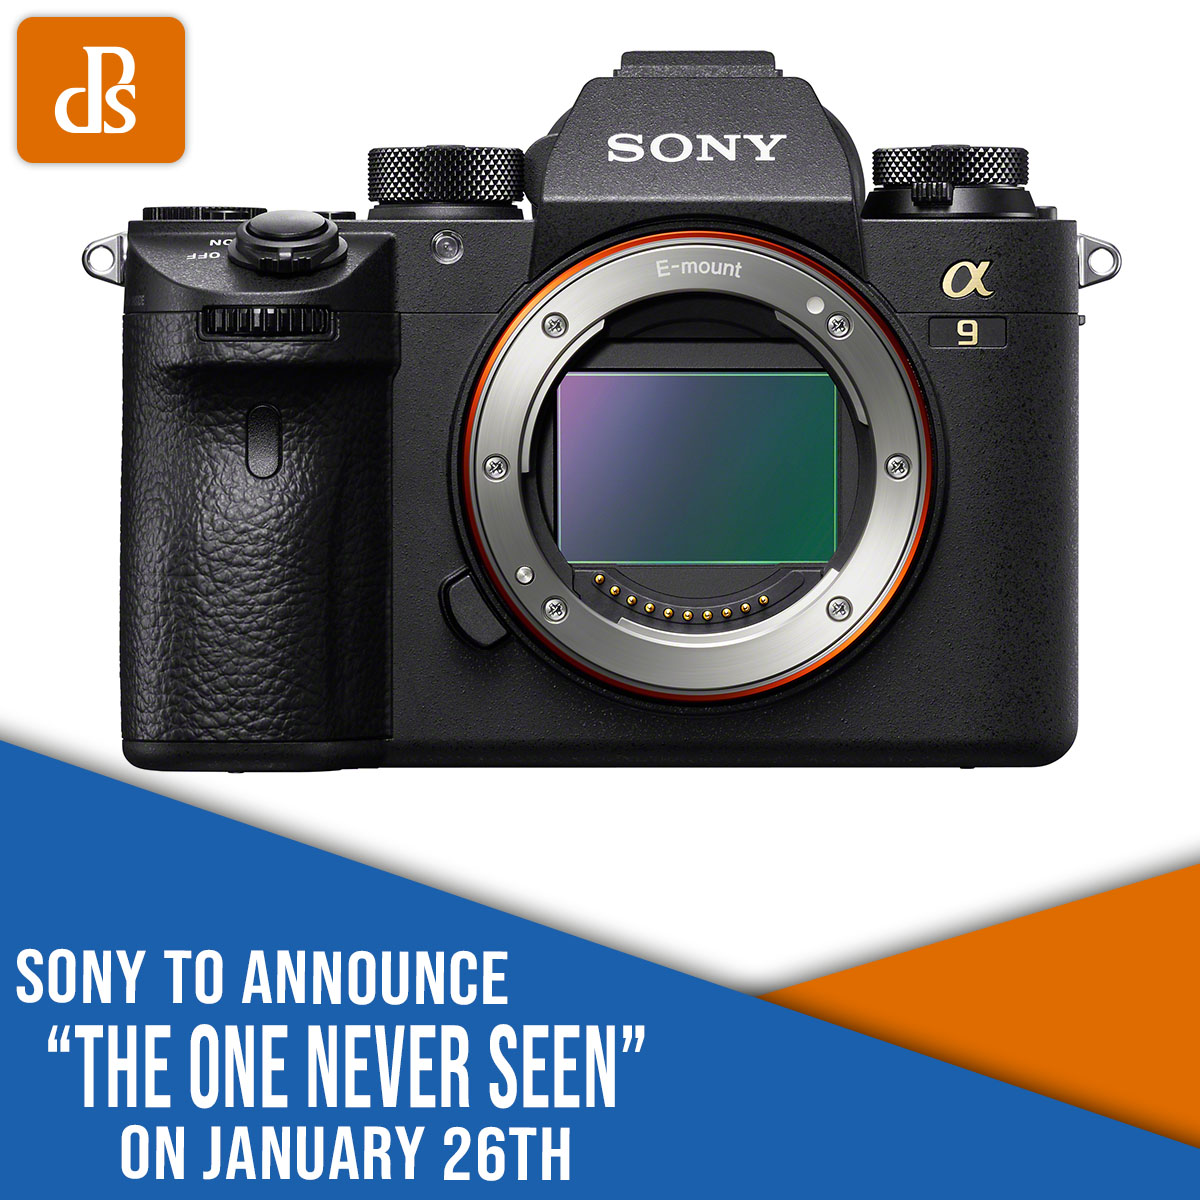 https://i2.wp.com/digital-photography-school.com/wp-content/uploads/2021/01/Sony-announcement-January-26-3.jpg?resize=1200%2C1200&ssl=1